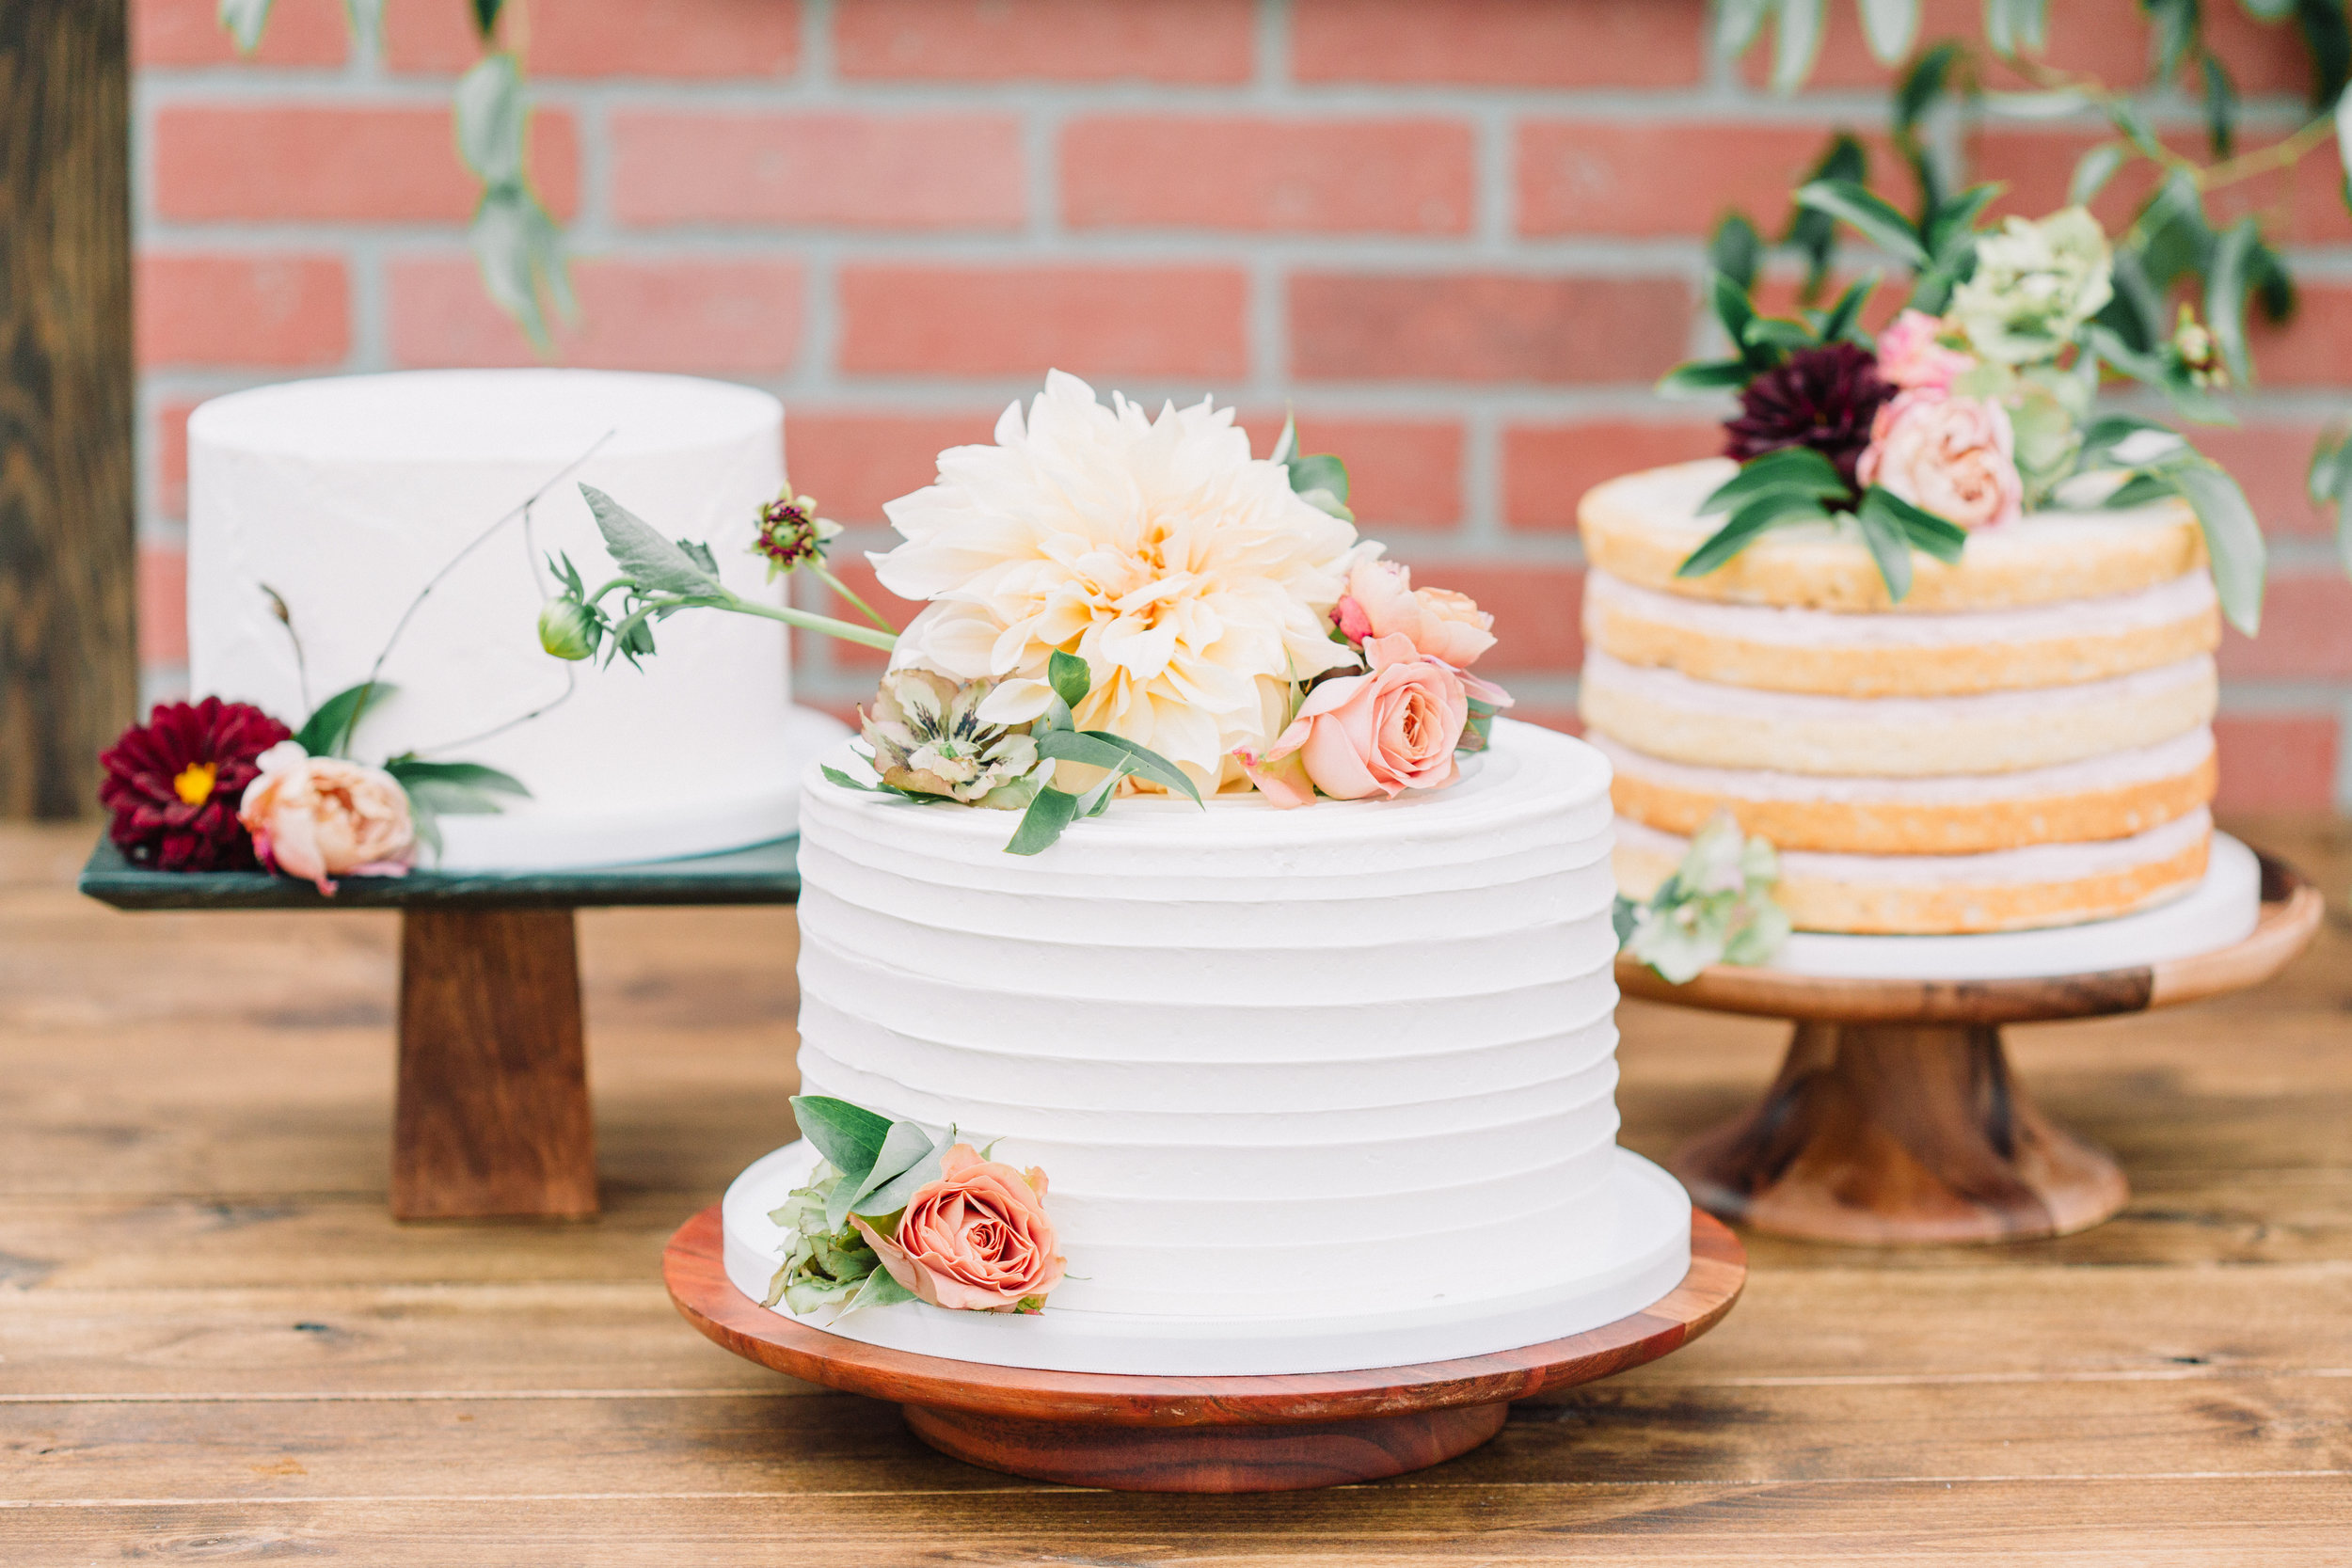 The Potted Pansy Flour and Flourish Cake